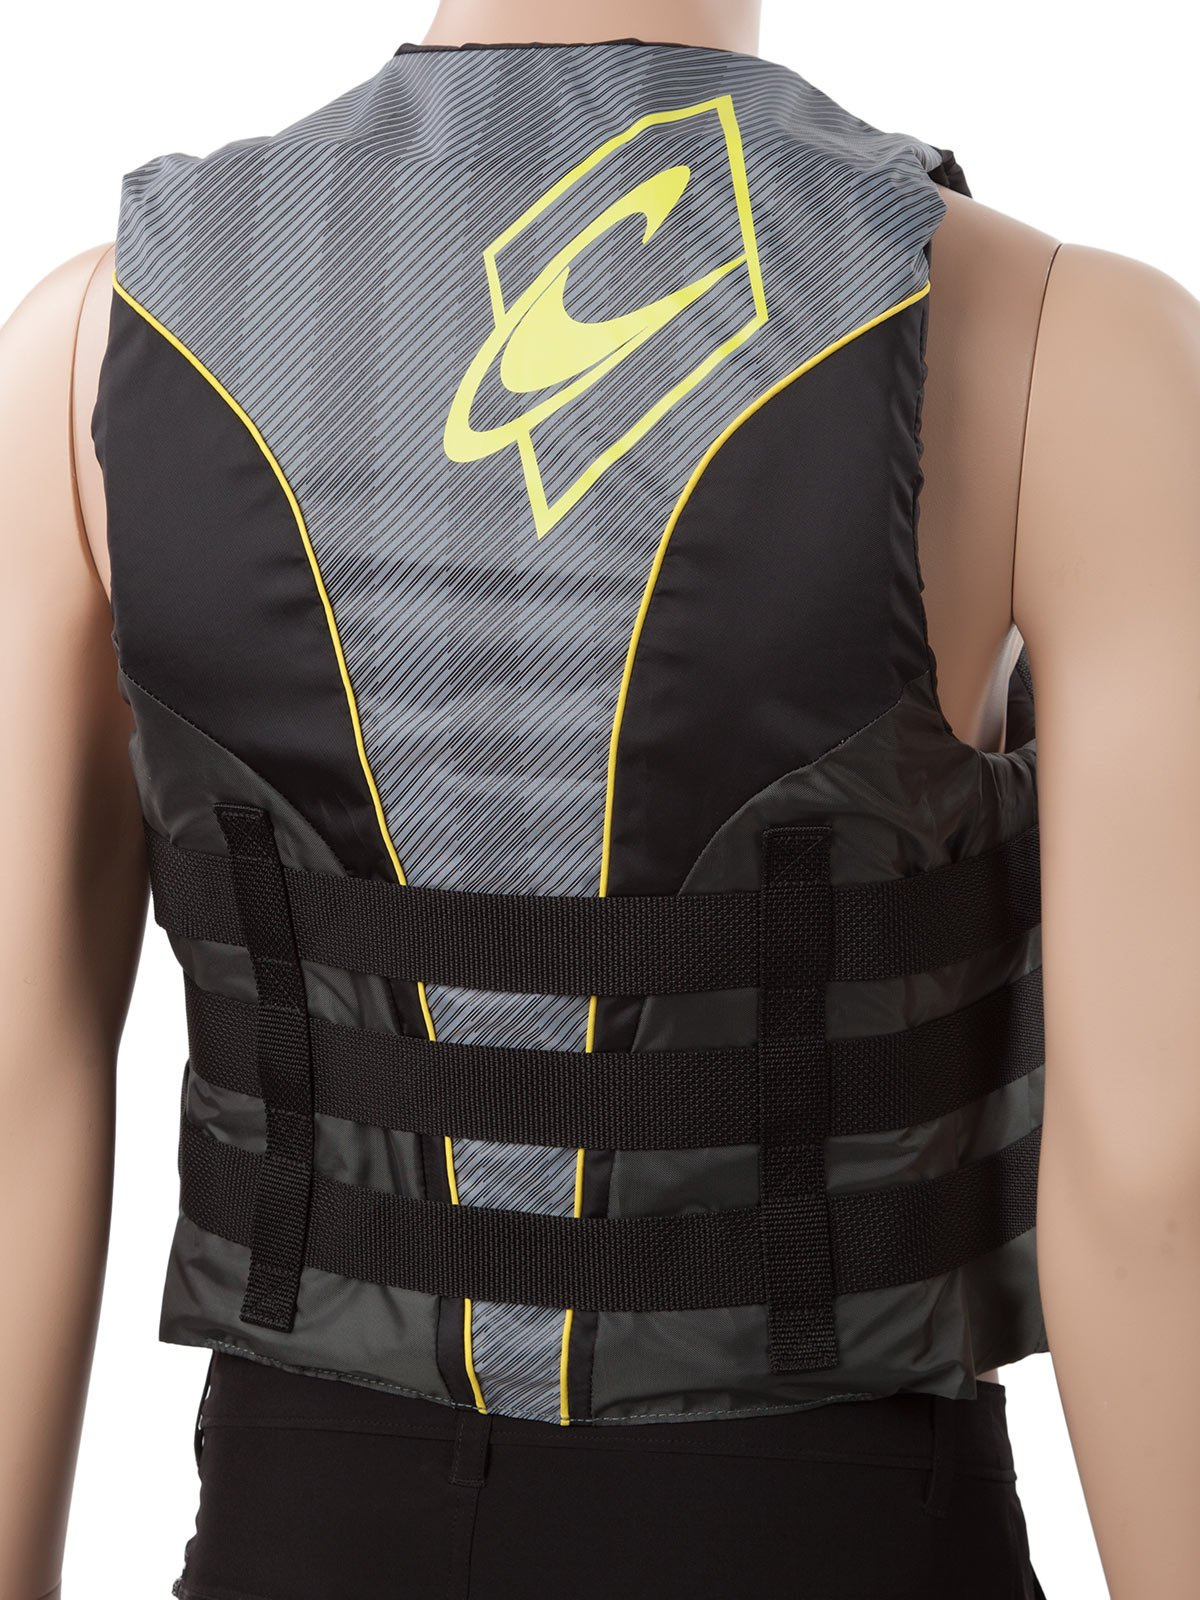 O'Neill Mens Superlite USCG Life Vest M Black/Graphite/Smoke/Yellow (4723) by O'Neill (Image #5)